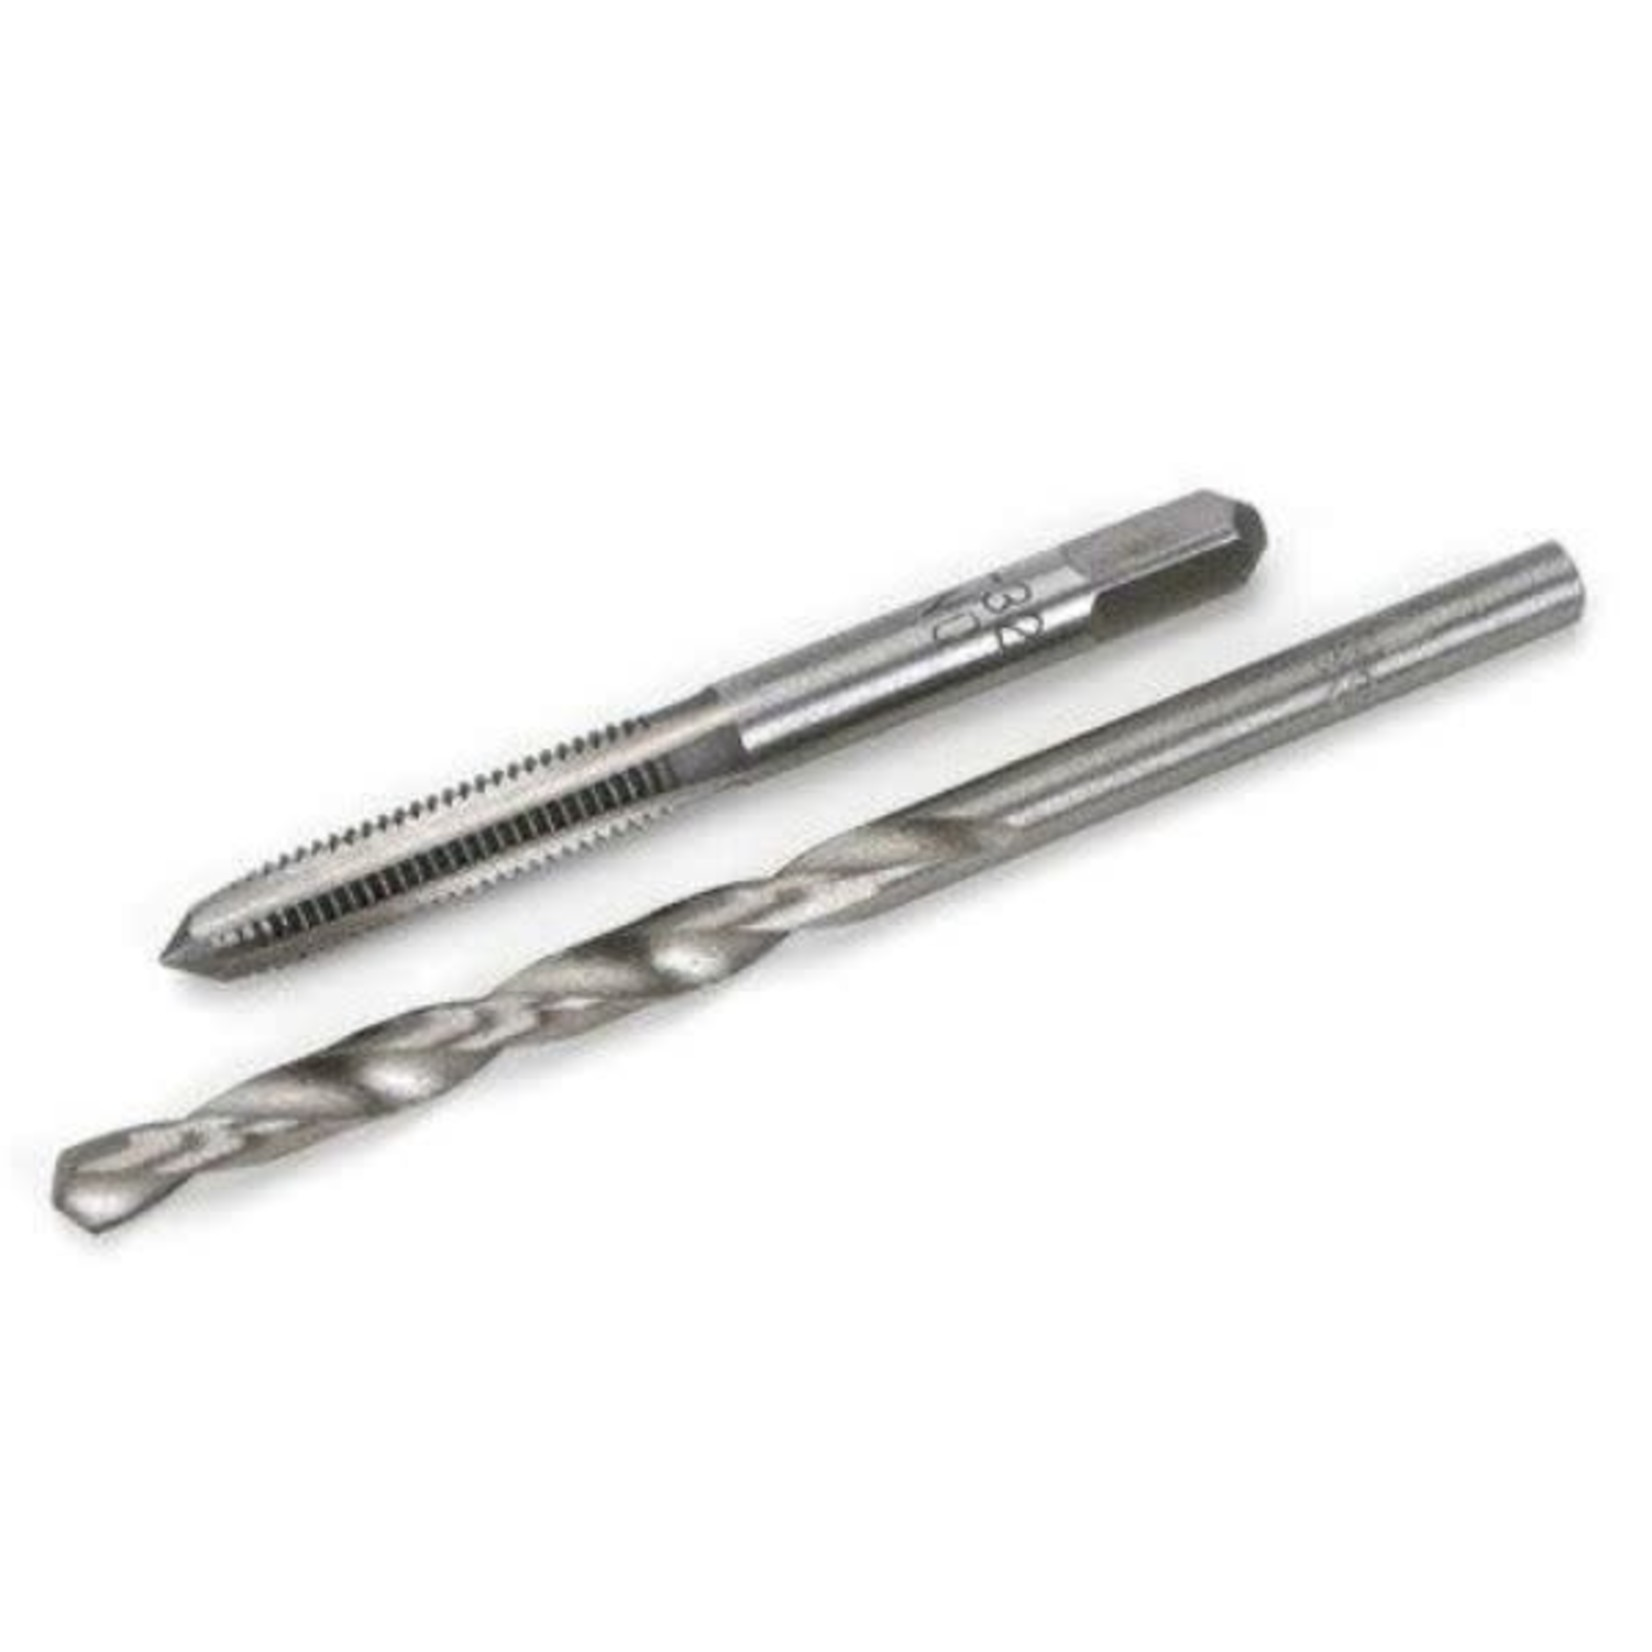 Dubro DUB360 Dubro 2-56 Tap And Drill Set